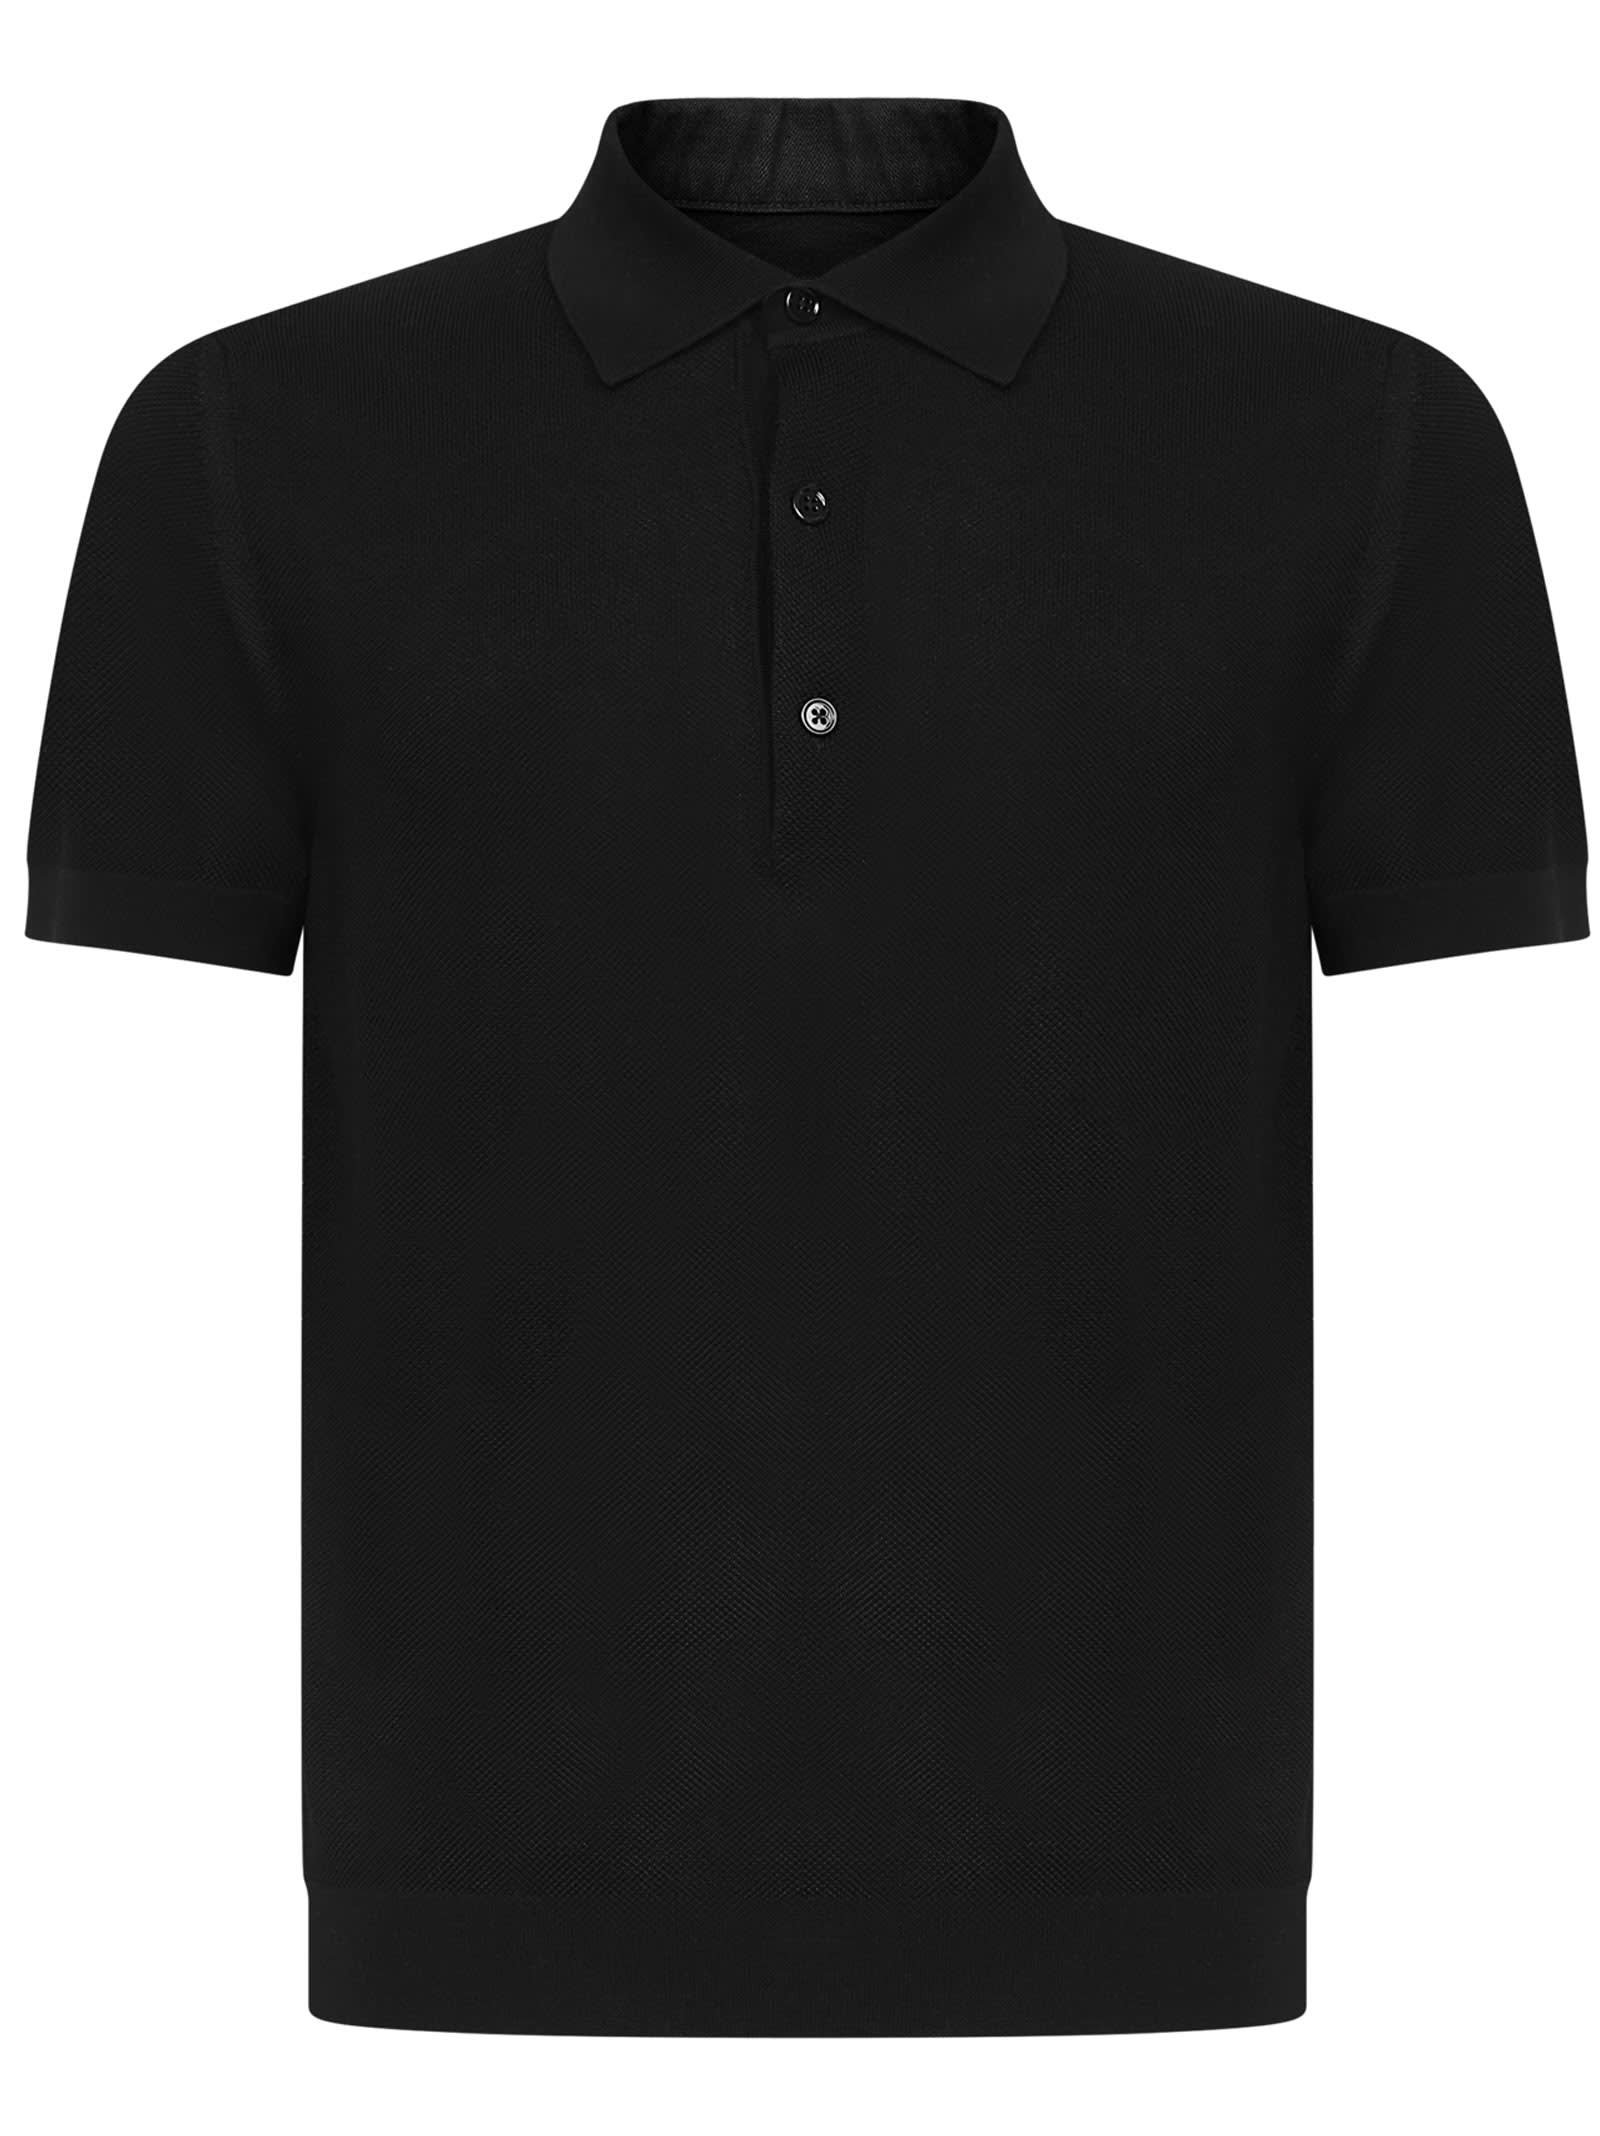 Tom Ford Cottons POLO SHIRT